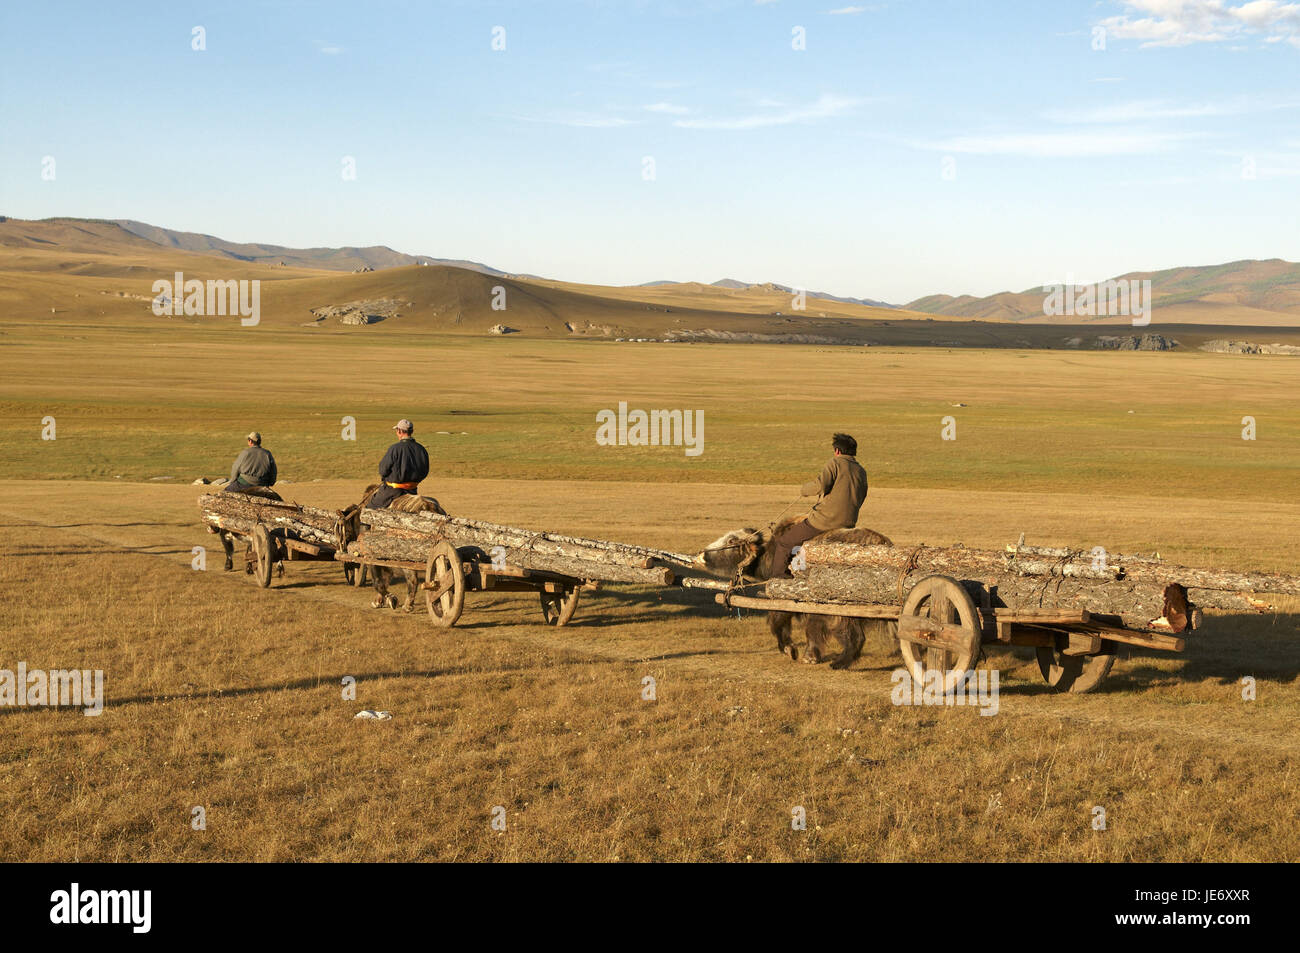 Mongolia, Central Asia, Arkhangai province, nomad, yaks, carriages, wooden carry, - Stock Image